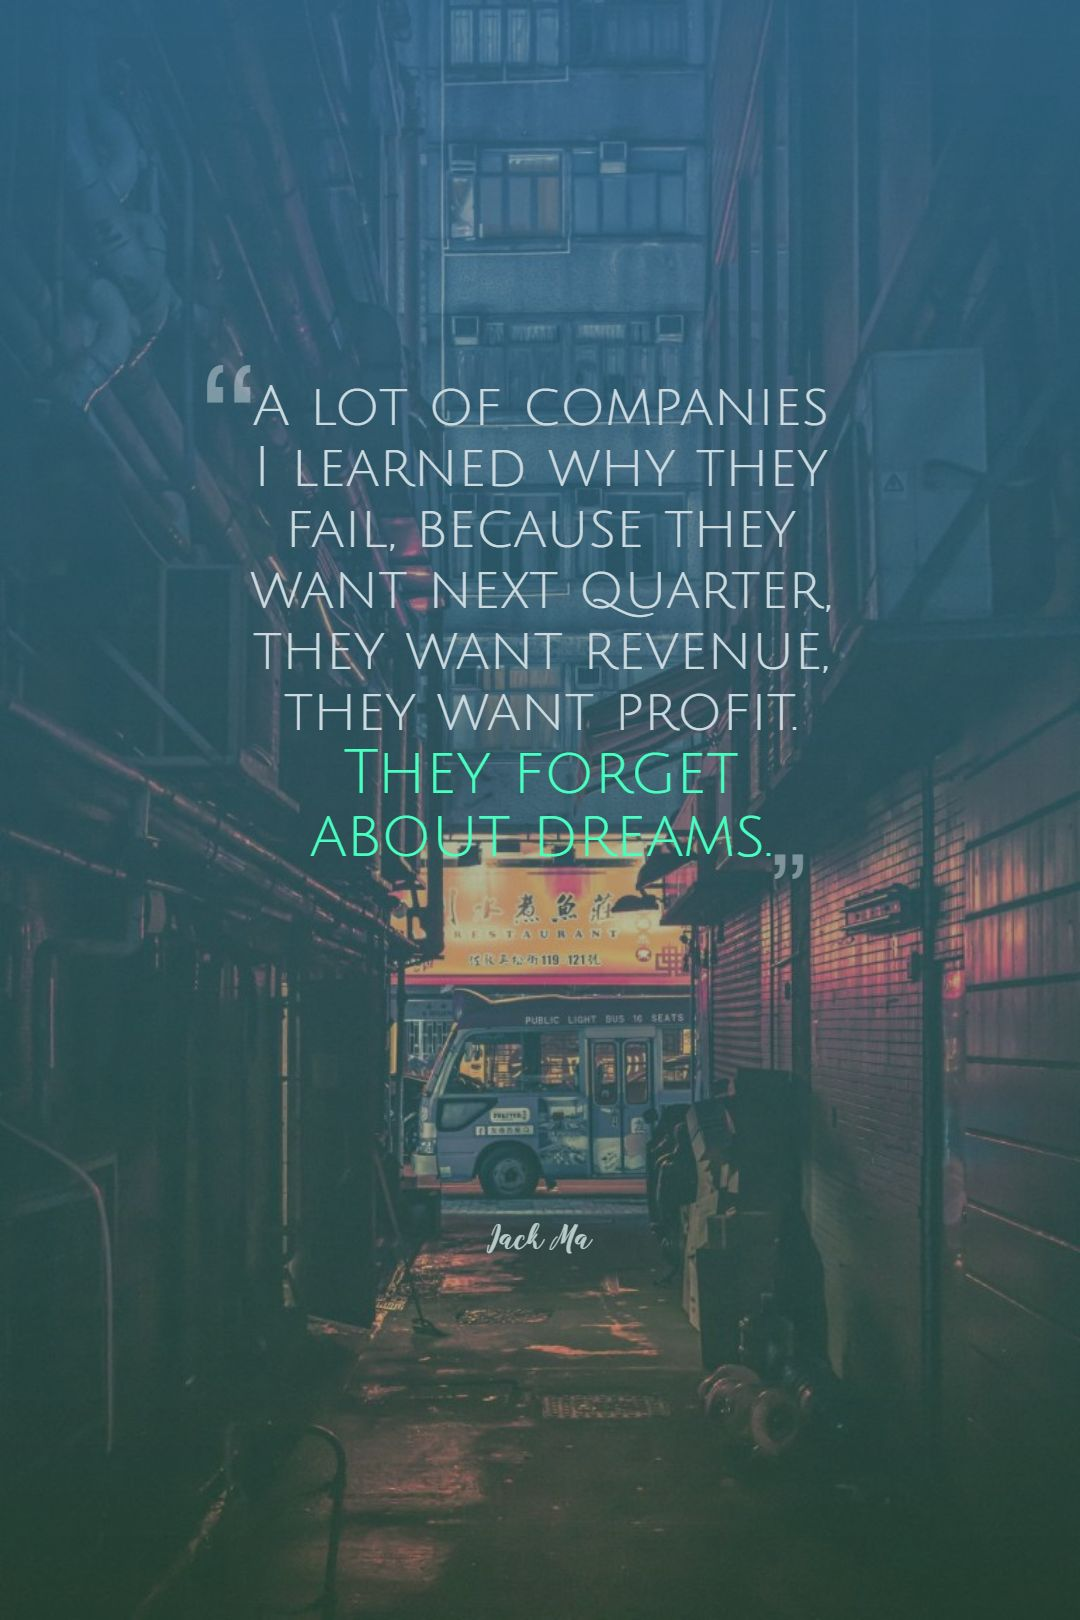 Quotes image of A lot of companies I learned why they fail, because they want next quarter, they want revenue, they want profit. They forget about dreams.